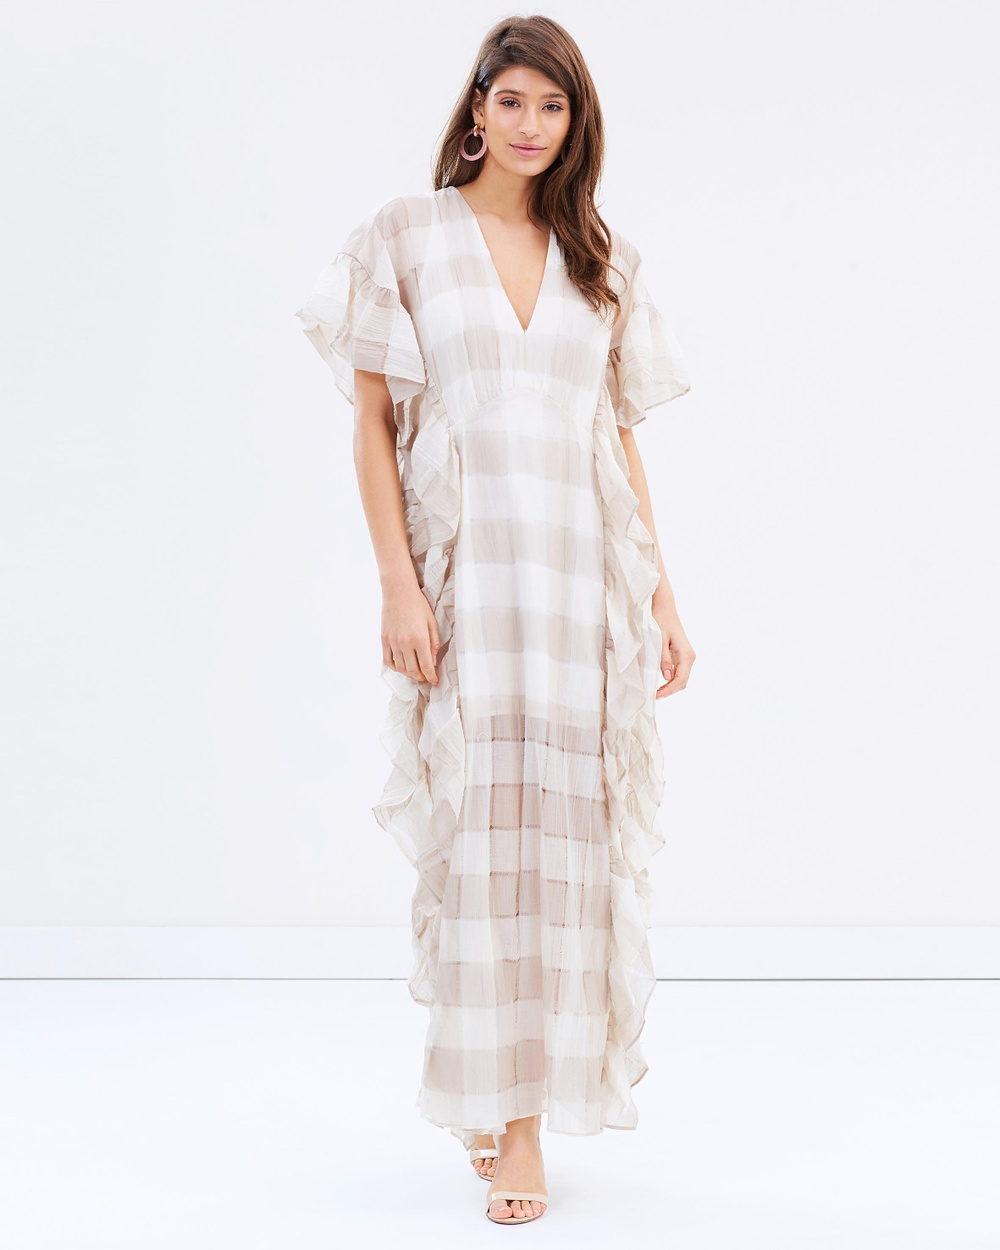 Stevie May Grande Maxi Dress Dresses Ecru Checks Grande Maxi Dress